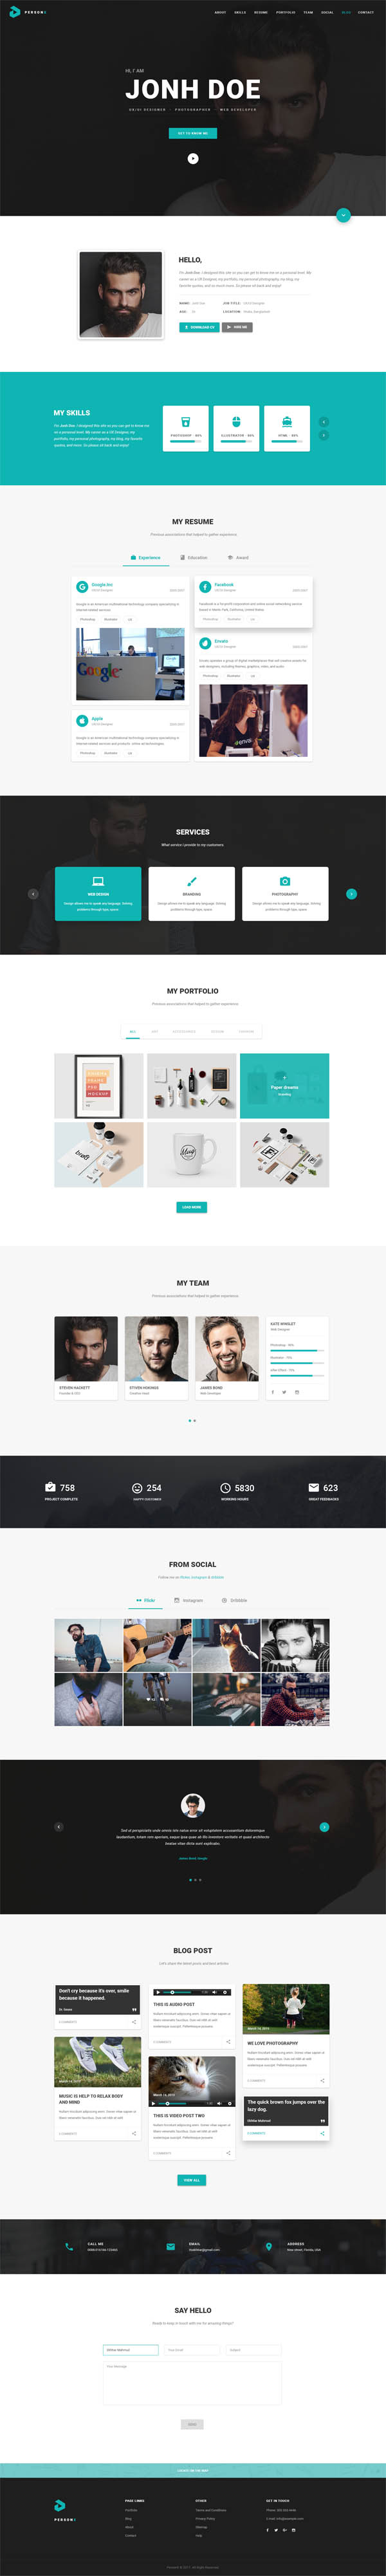 PersonX : Material Design Personal Theme